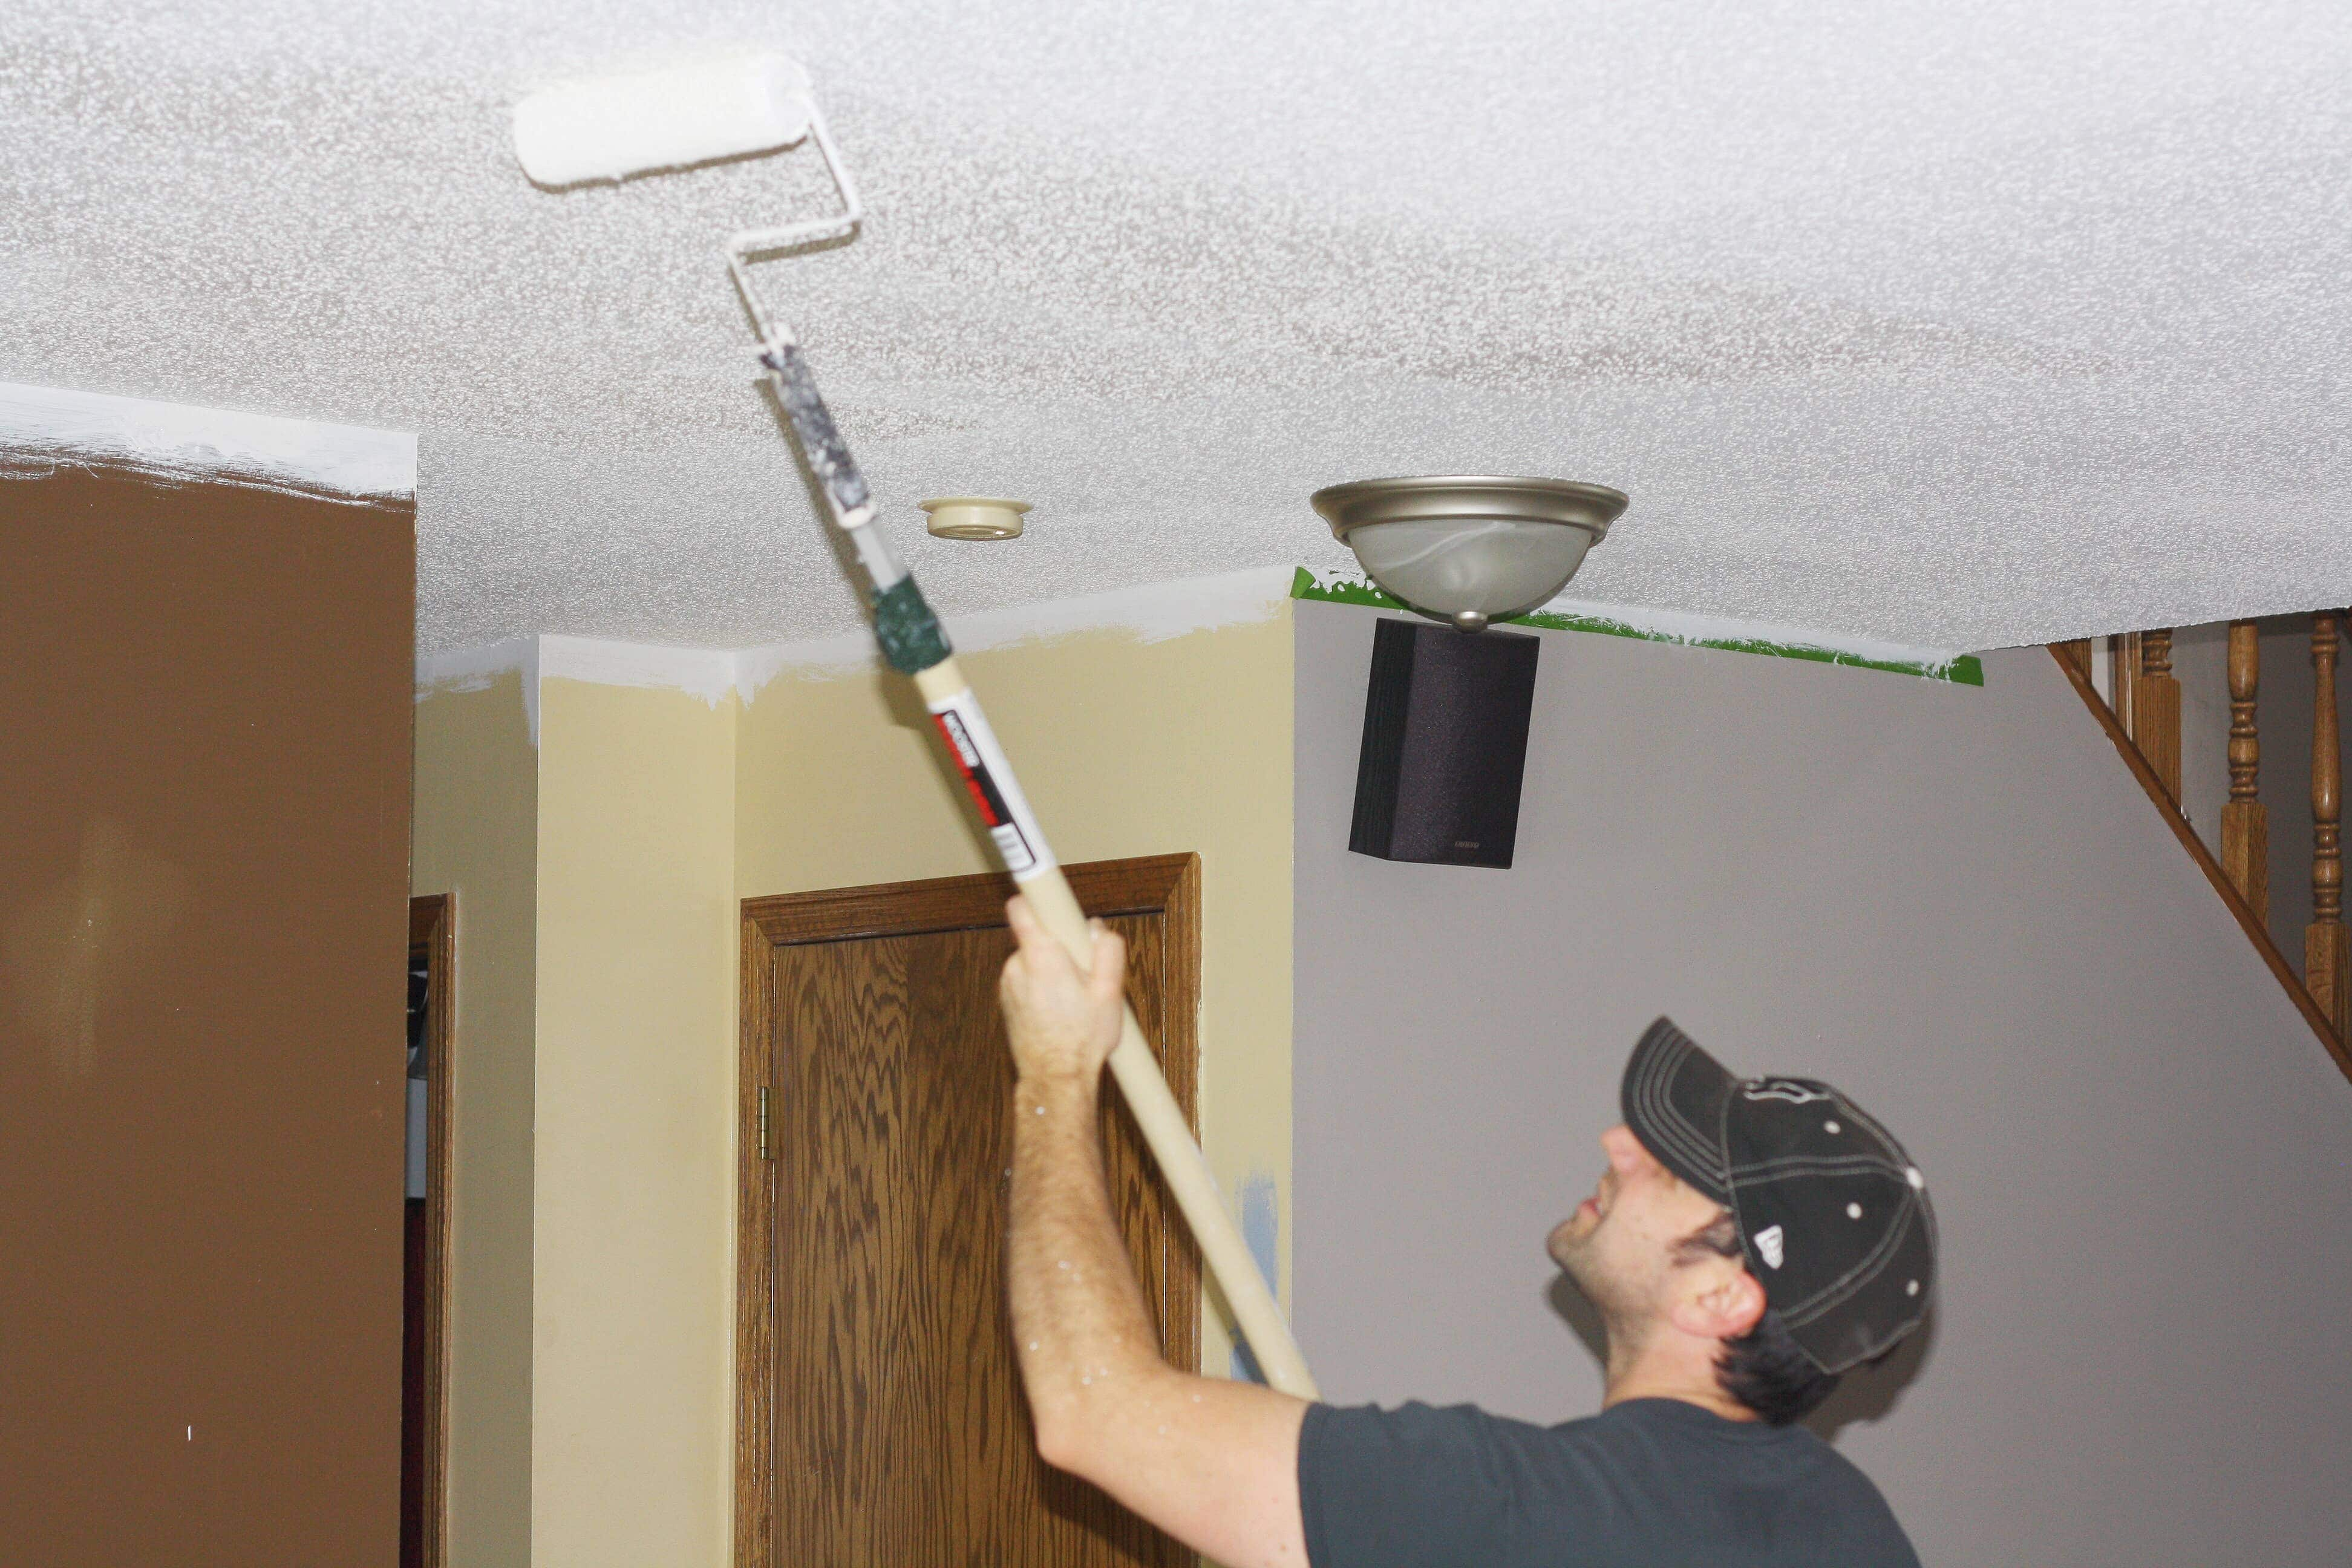 How to paint popcorn ceiling - www.refashionablylate.com